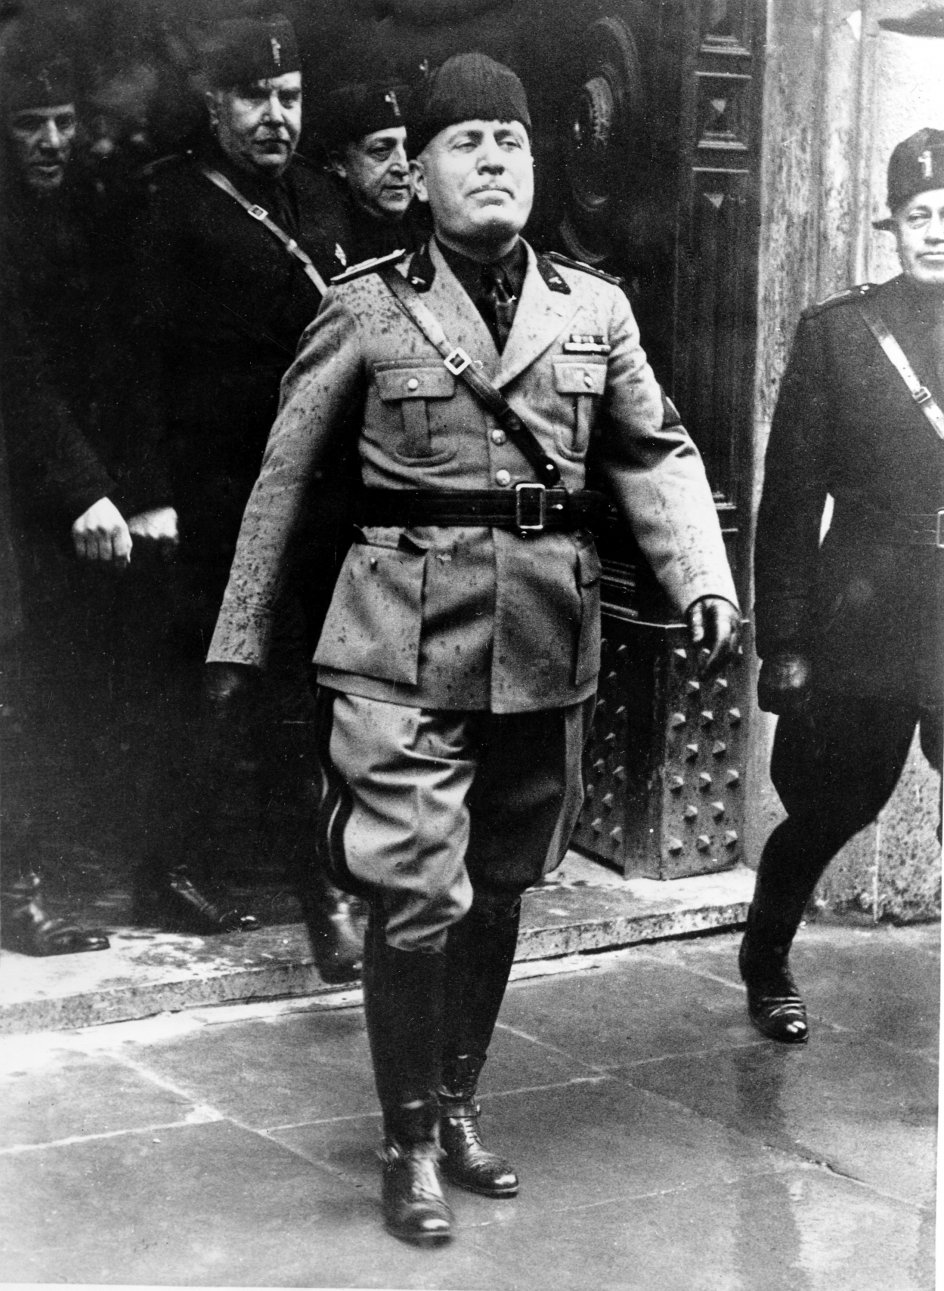 """FILE - In this April 21, 1936 file photo Benito Mussolini walks in the rain during the 2, 698th anniversary of the birth of Rome. A new documentary about Benito Mussolini examines the near cult-like fascination that Italians had with the fascist dictator and his body that continues today among his fans. """"Il Corpo Del Duce, """" (""""The Duce's Corpse"""") contains some gruesome, never-before-seen images of Mussolini's decayed corpse after he was hanged upside down in a Milan square on April 29, 1945 after being shot by anti-fascist partisans. The film, directed by Fabrizio Laurenti, is based on a book by Italian author Sergio Luzzato which literally follows the path of Mussolini's corpse from the gas station to a tomb in Predappio, his birthplace in northern Italy, where thousands of supporters still pay homage every year. (AP Photo/Str)"""